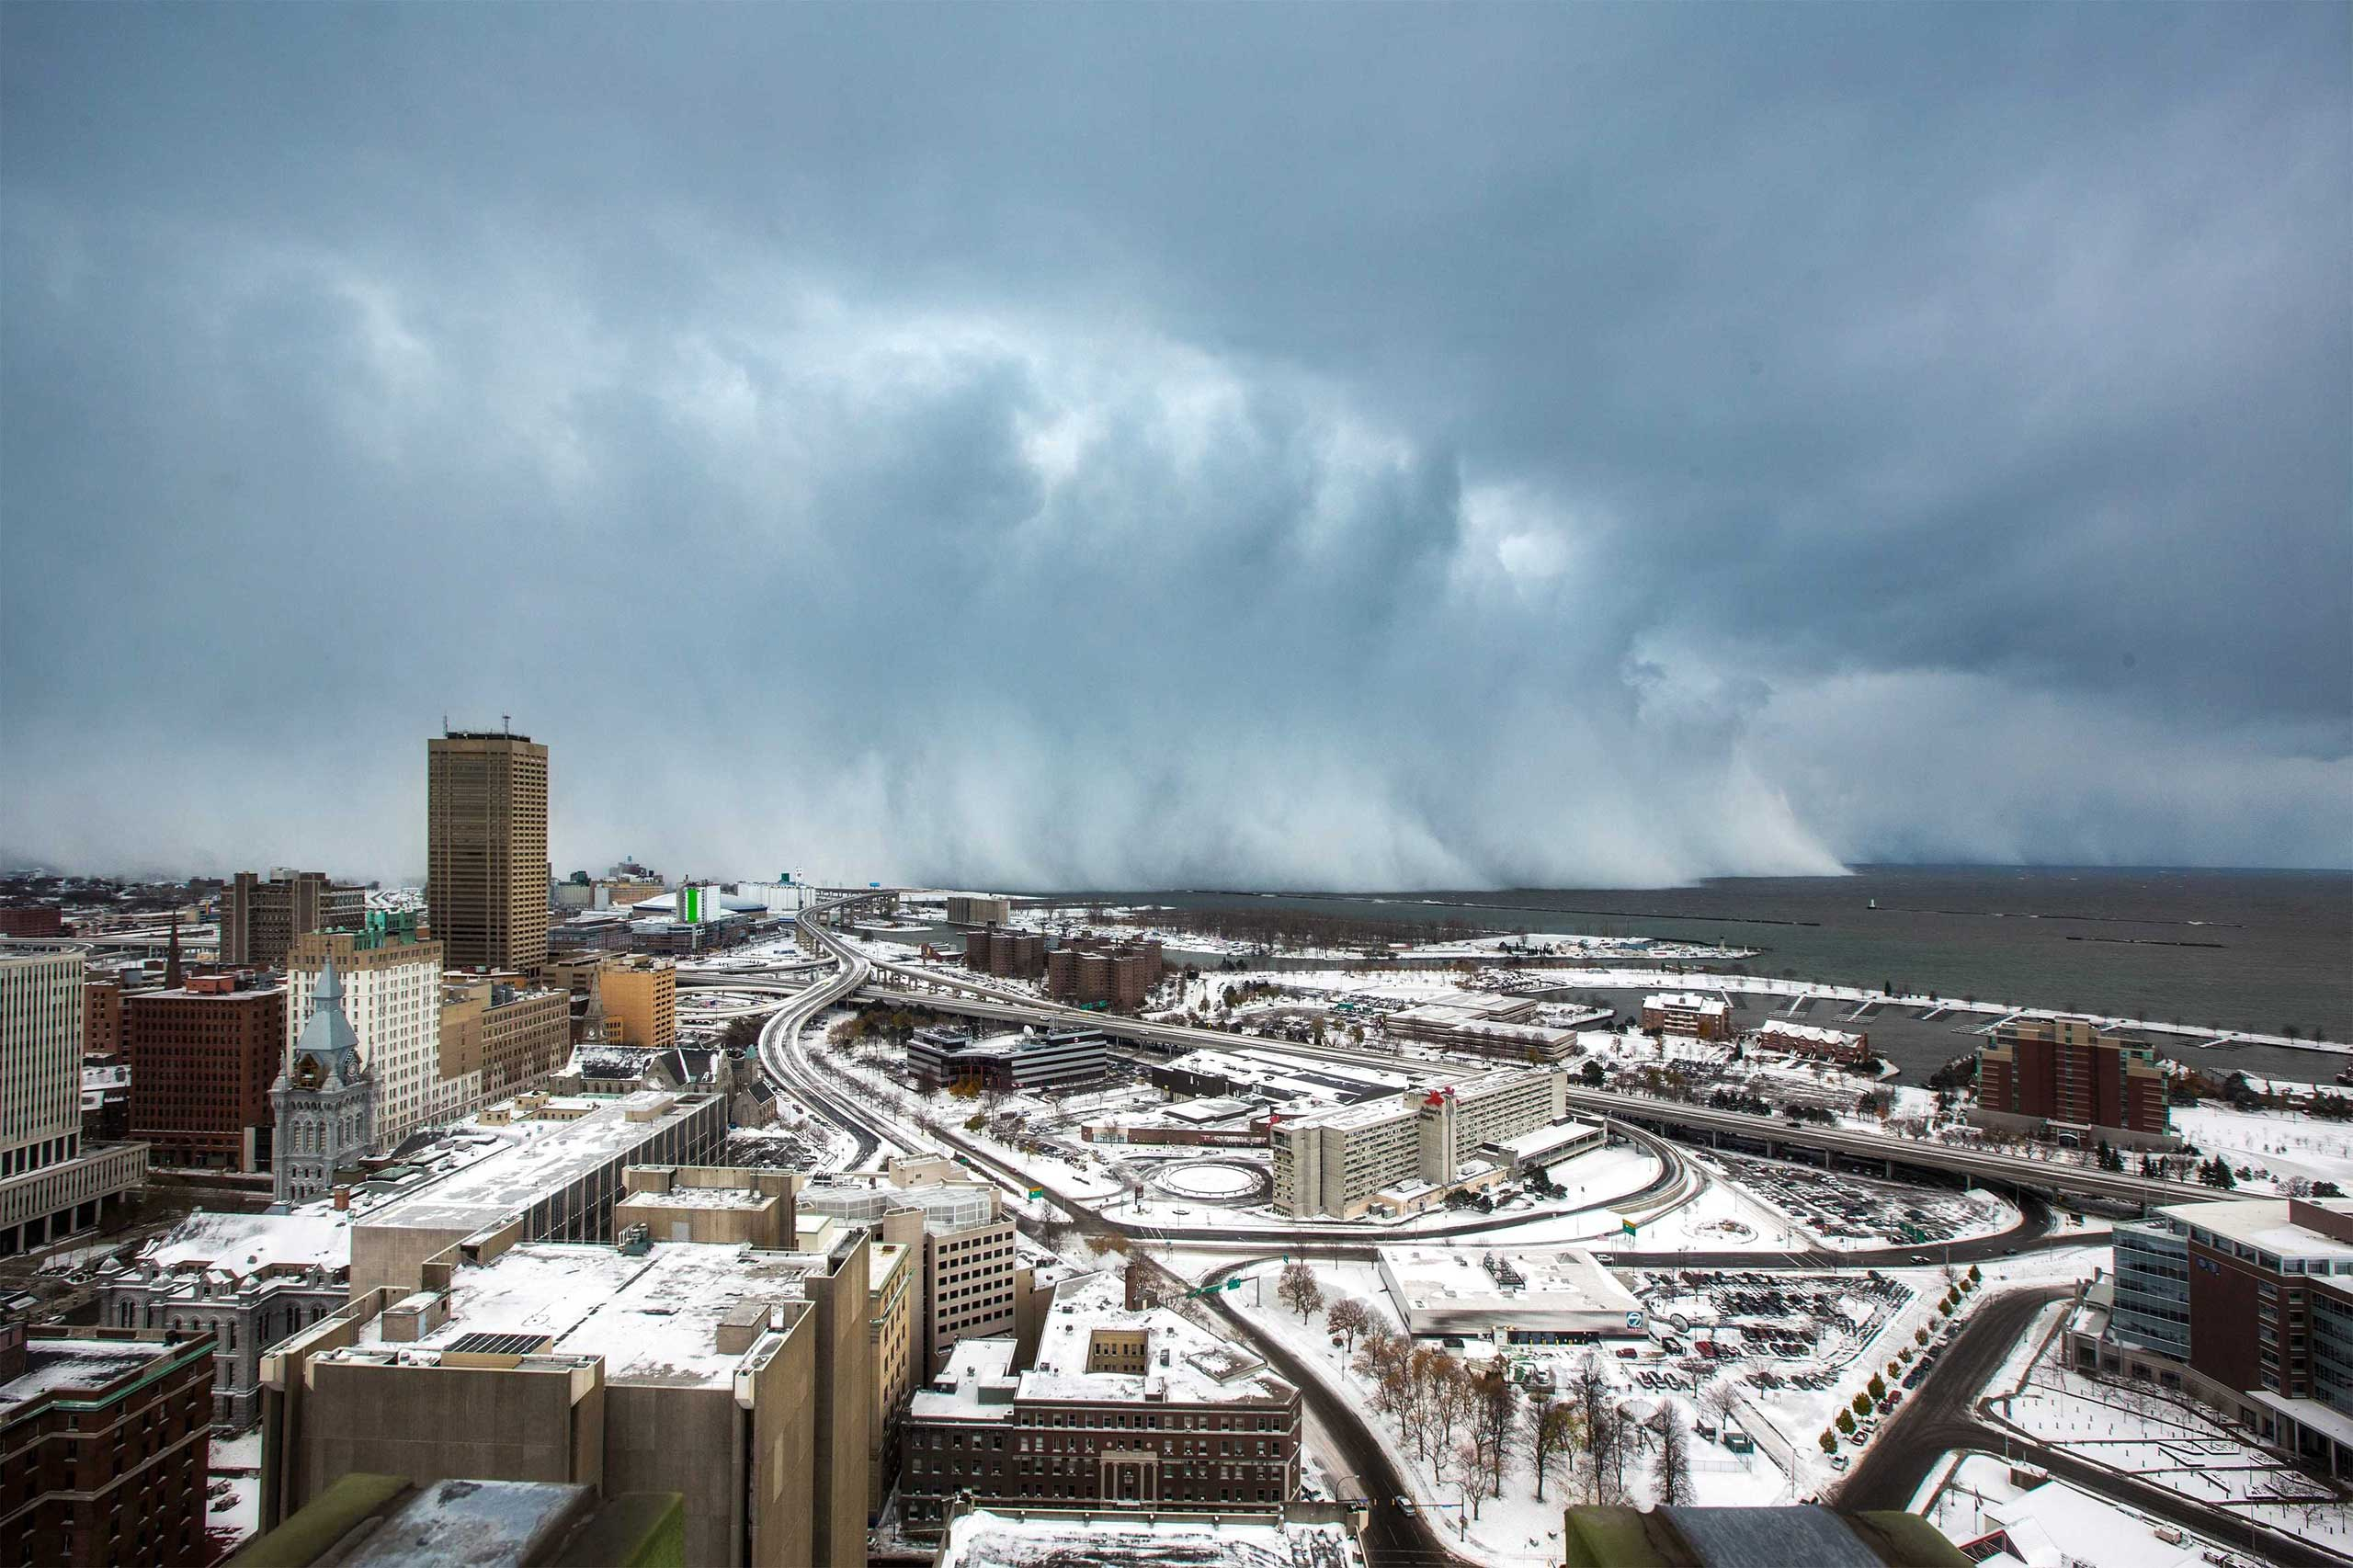 <b>Buffalo Snow Storm</b> Storm clouds and snow blow off Lake Erie in Buffalo, N.Y. on Nov. 18, 2014. An autumn blizzard dumped a year's worth of snow in three days on Western New York state, where five people died and residents, some stranded overnight in cars, braced for another pummeling expected later on Wednesday. REUTERS/Lindsay DeDario (UNITED STATES - Tags: ENVIRONMENT TPX IMAGES OF THE DAY)